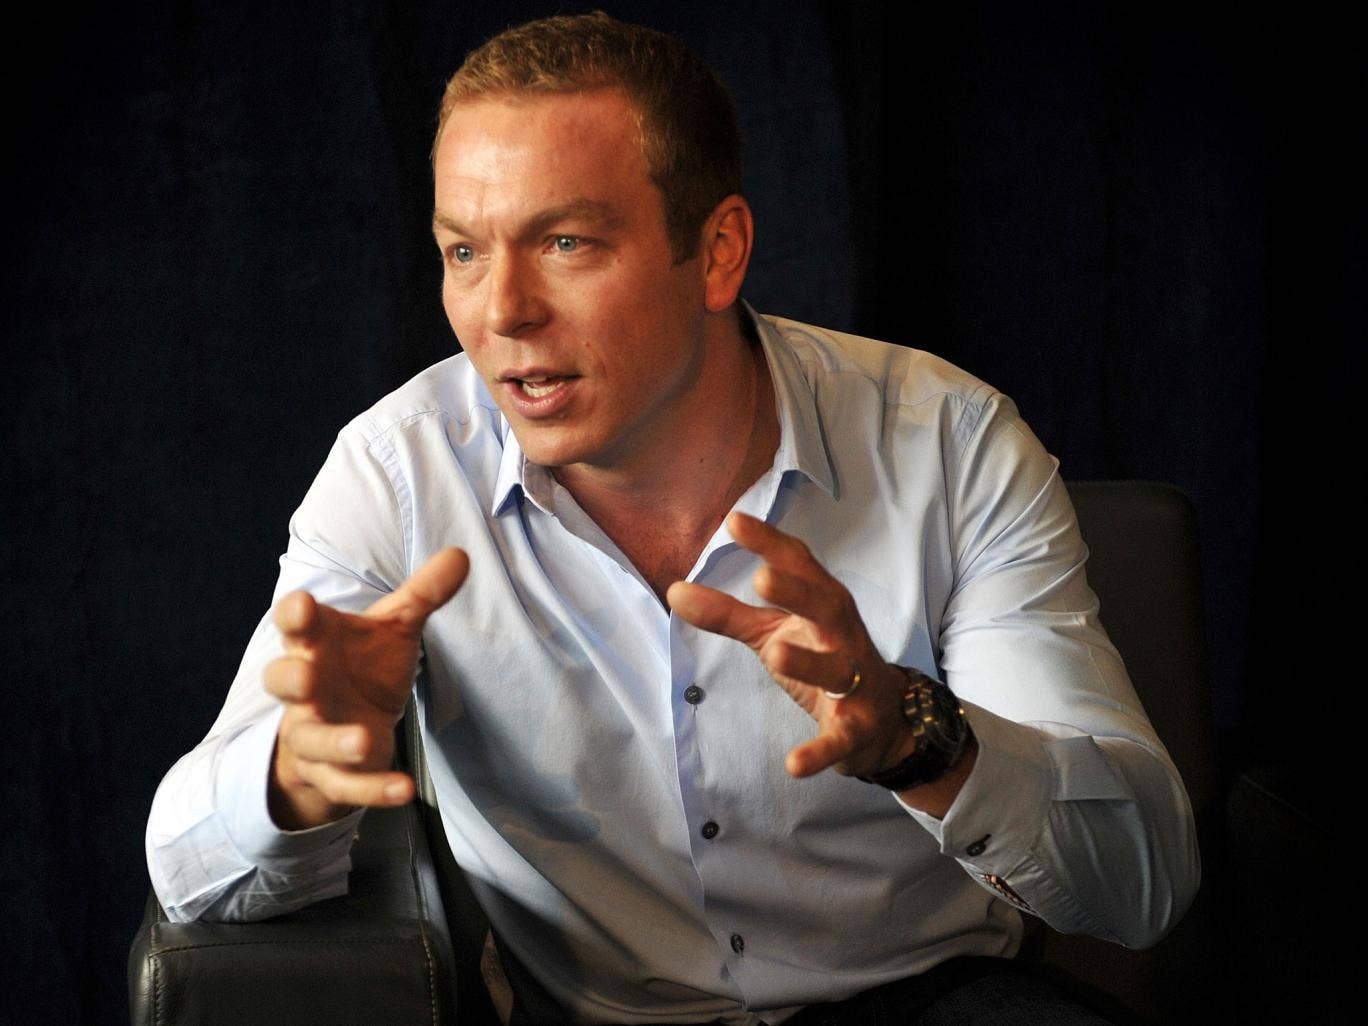 Sir Chris Hoy said he didn't want to start making up the numbers